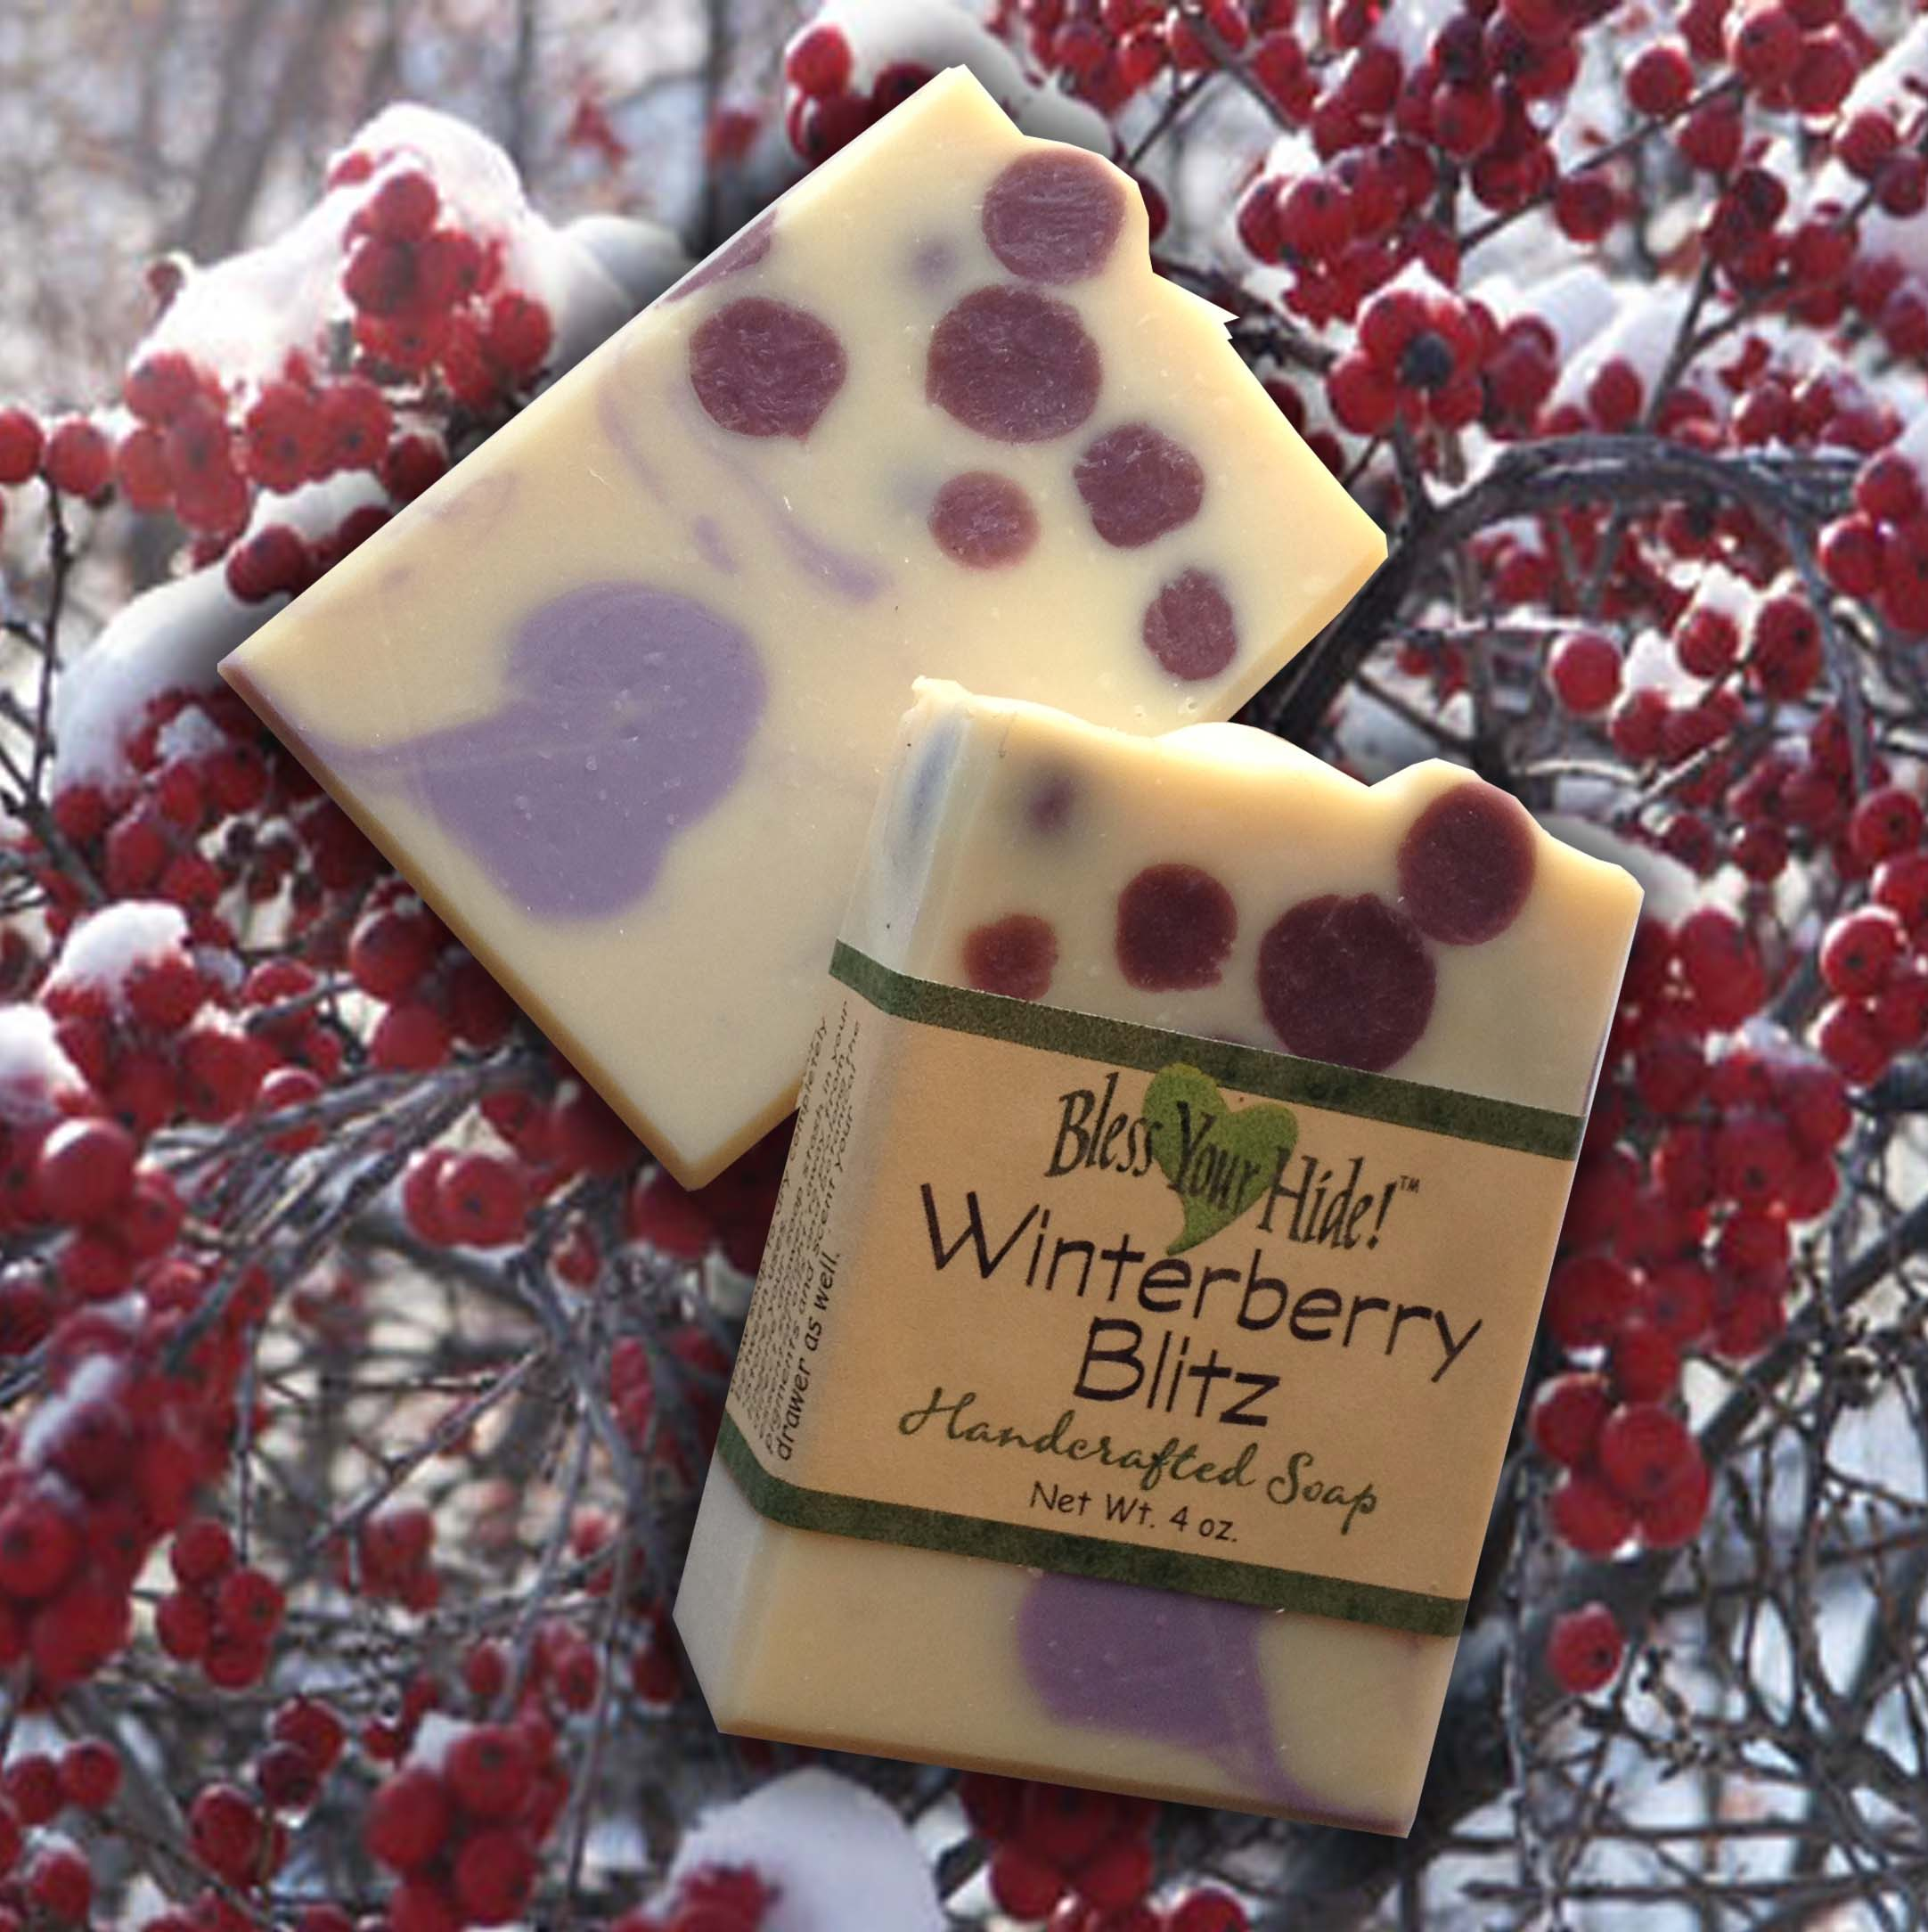 Winterberry Blitz